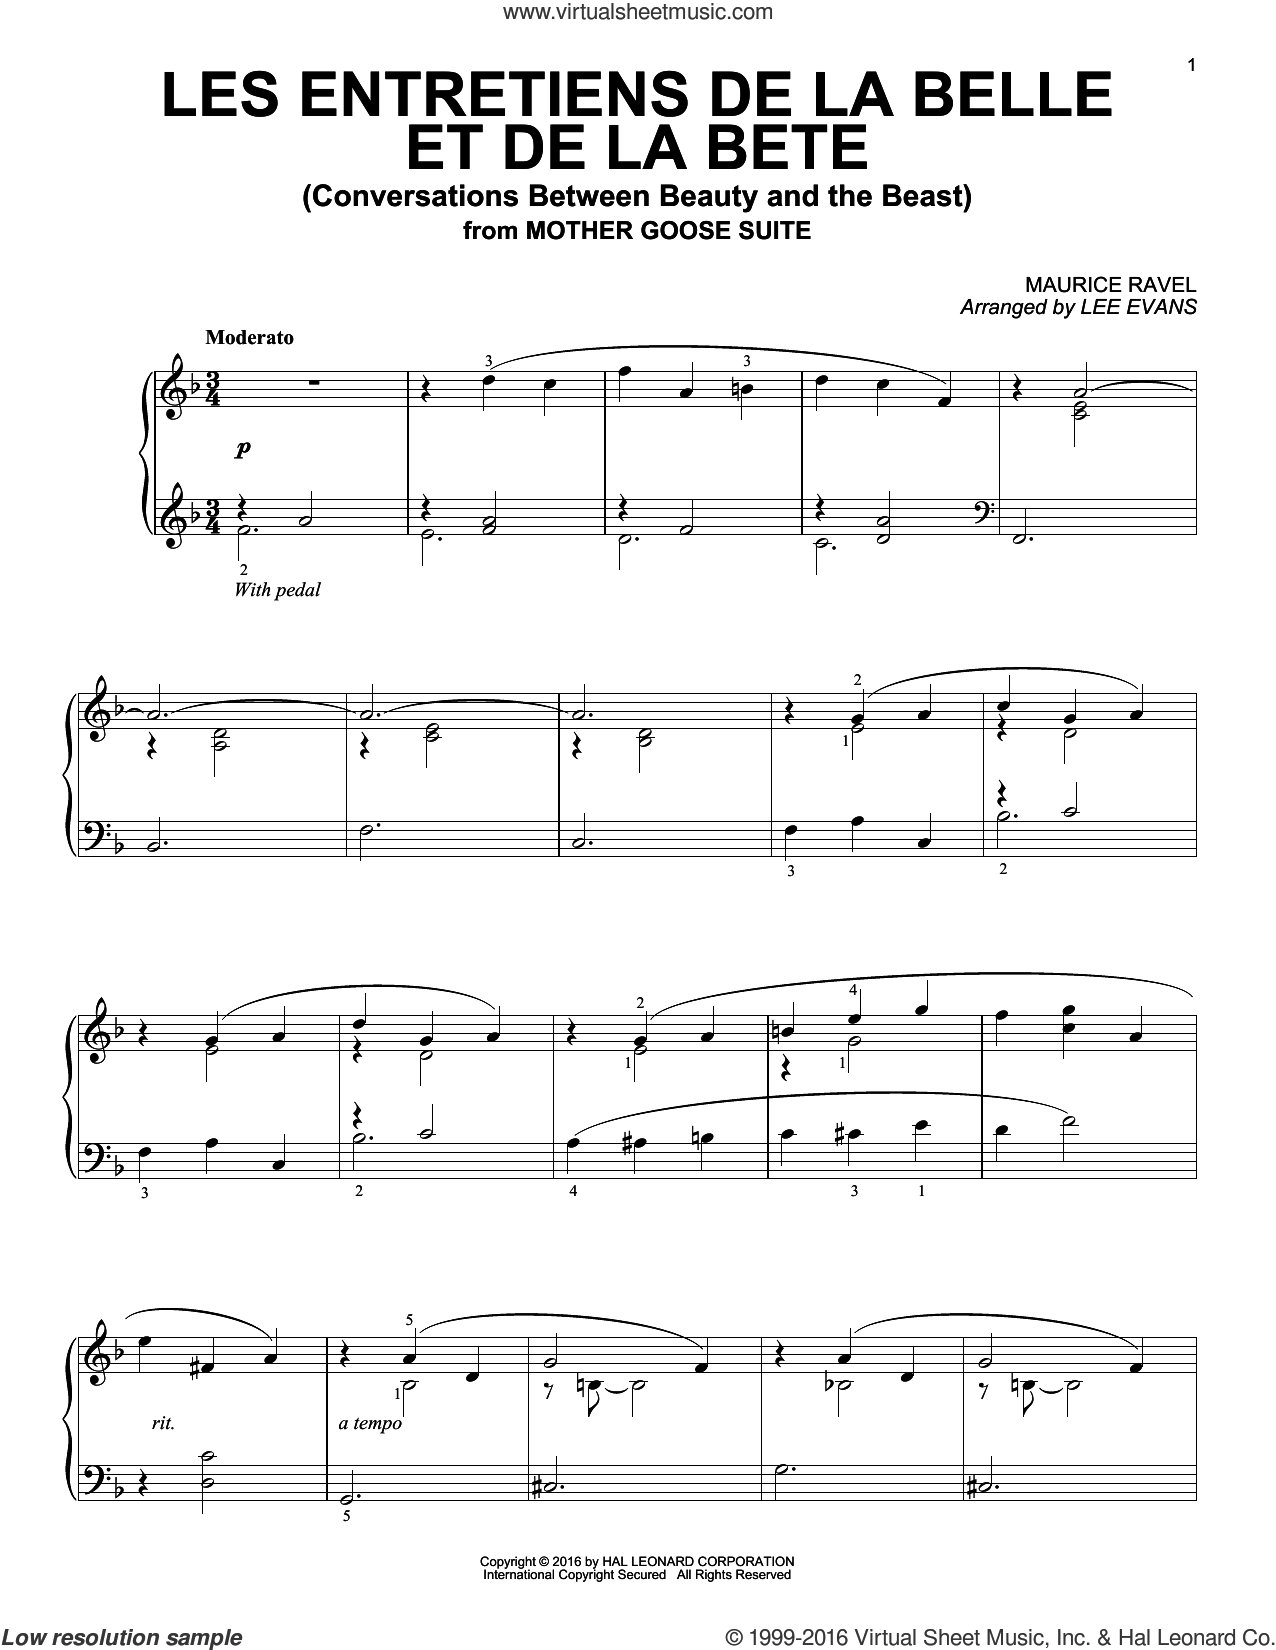 Les entretiens de la belle et de la bete (Conversations Between Beauty And The Beast) sheet music for piano solo by Maurice Ravel and Lee Evans, classical score, intermediate skill level